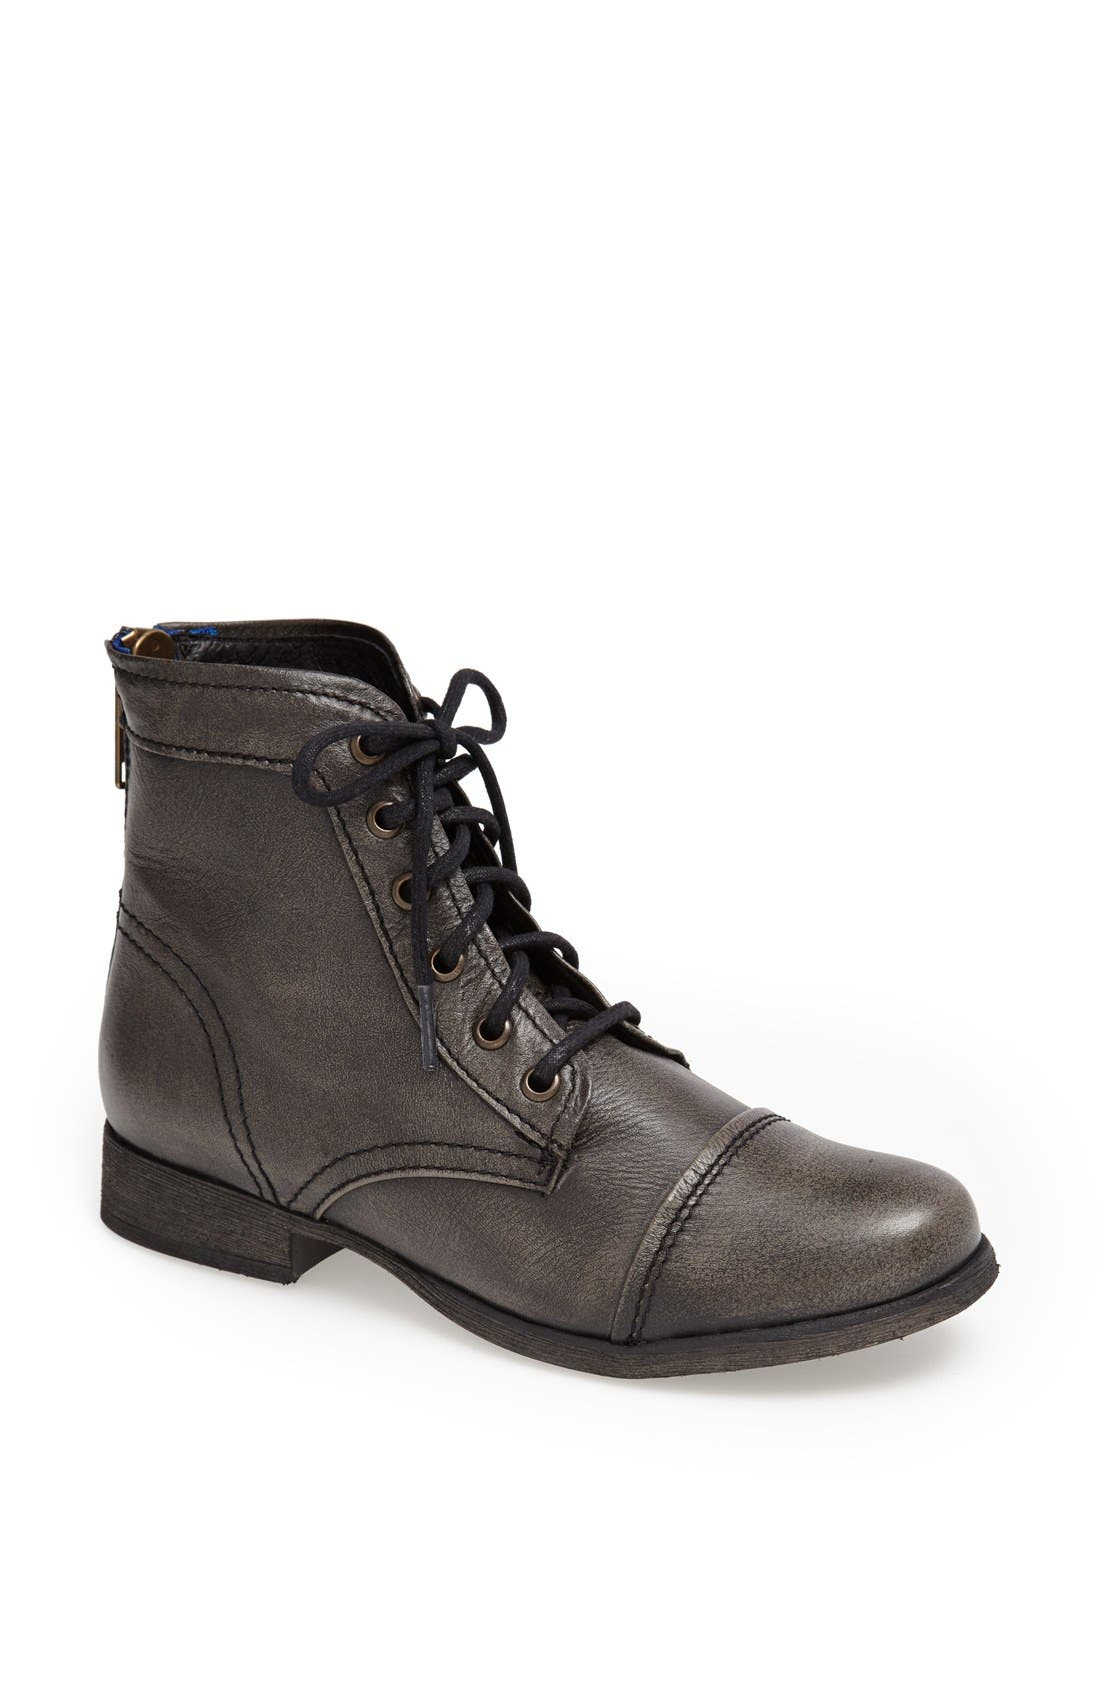 Alternate Image 1 Selected - Steve Madden 'Tuundra' Boot